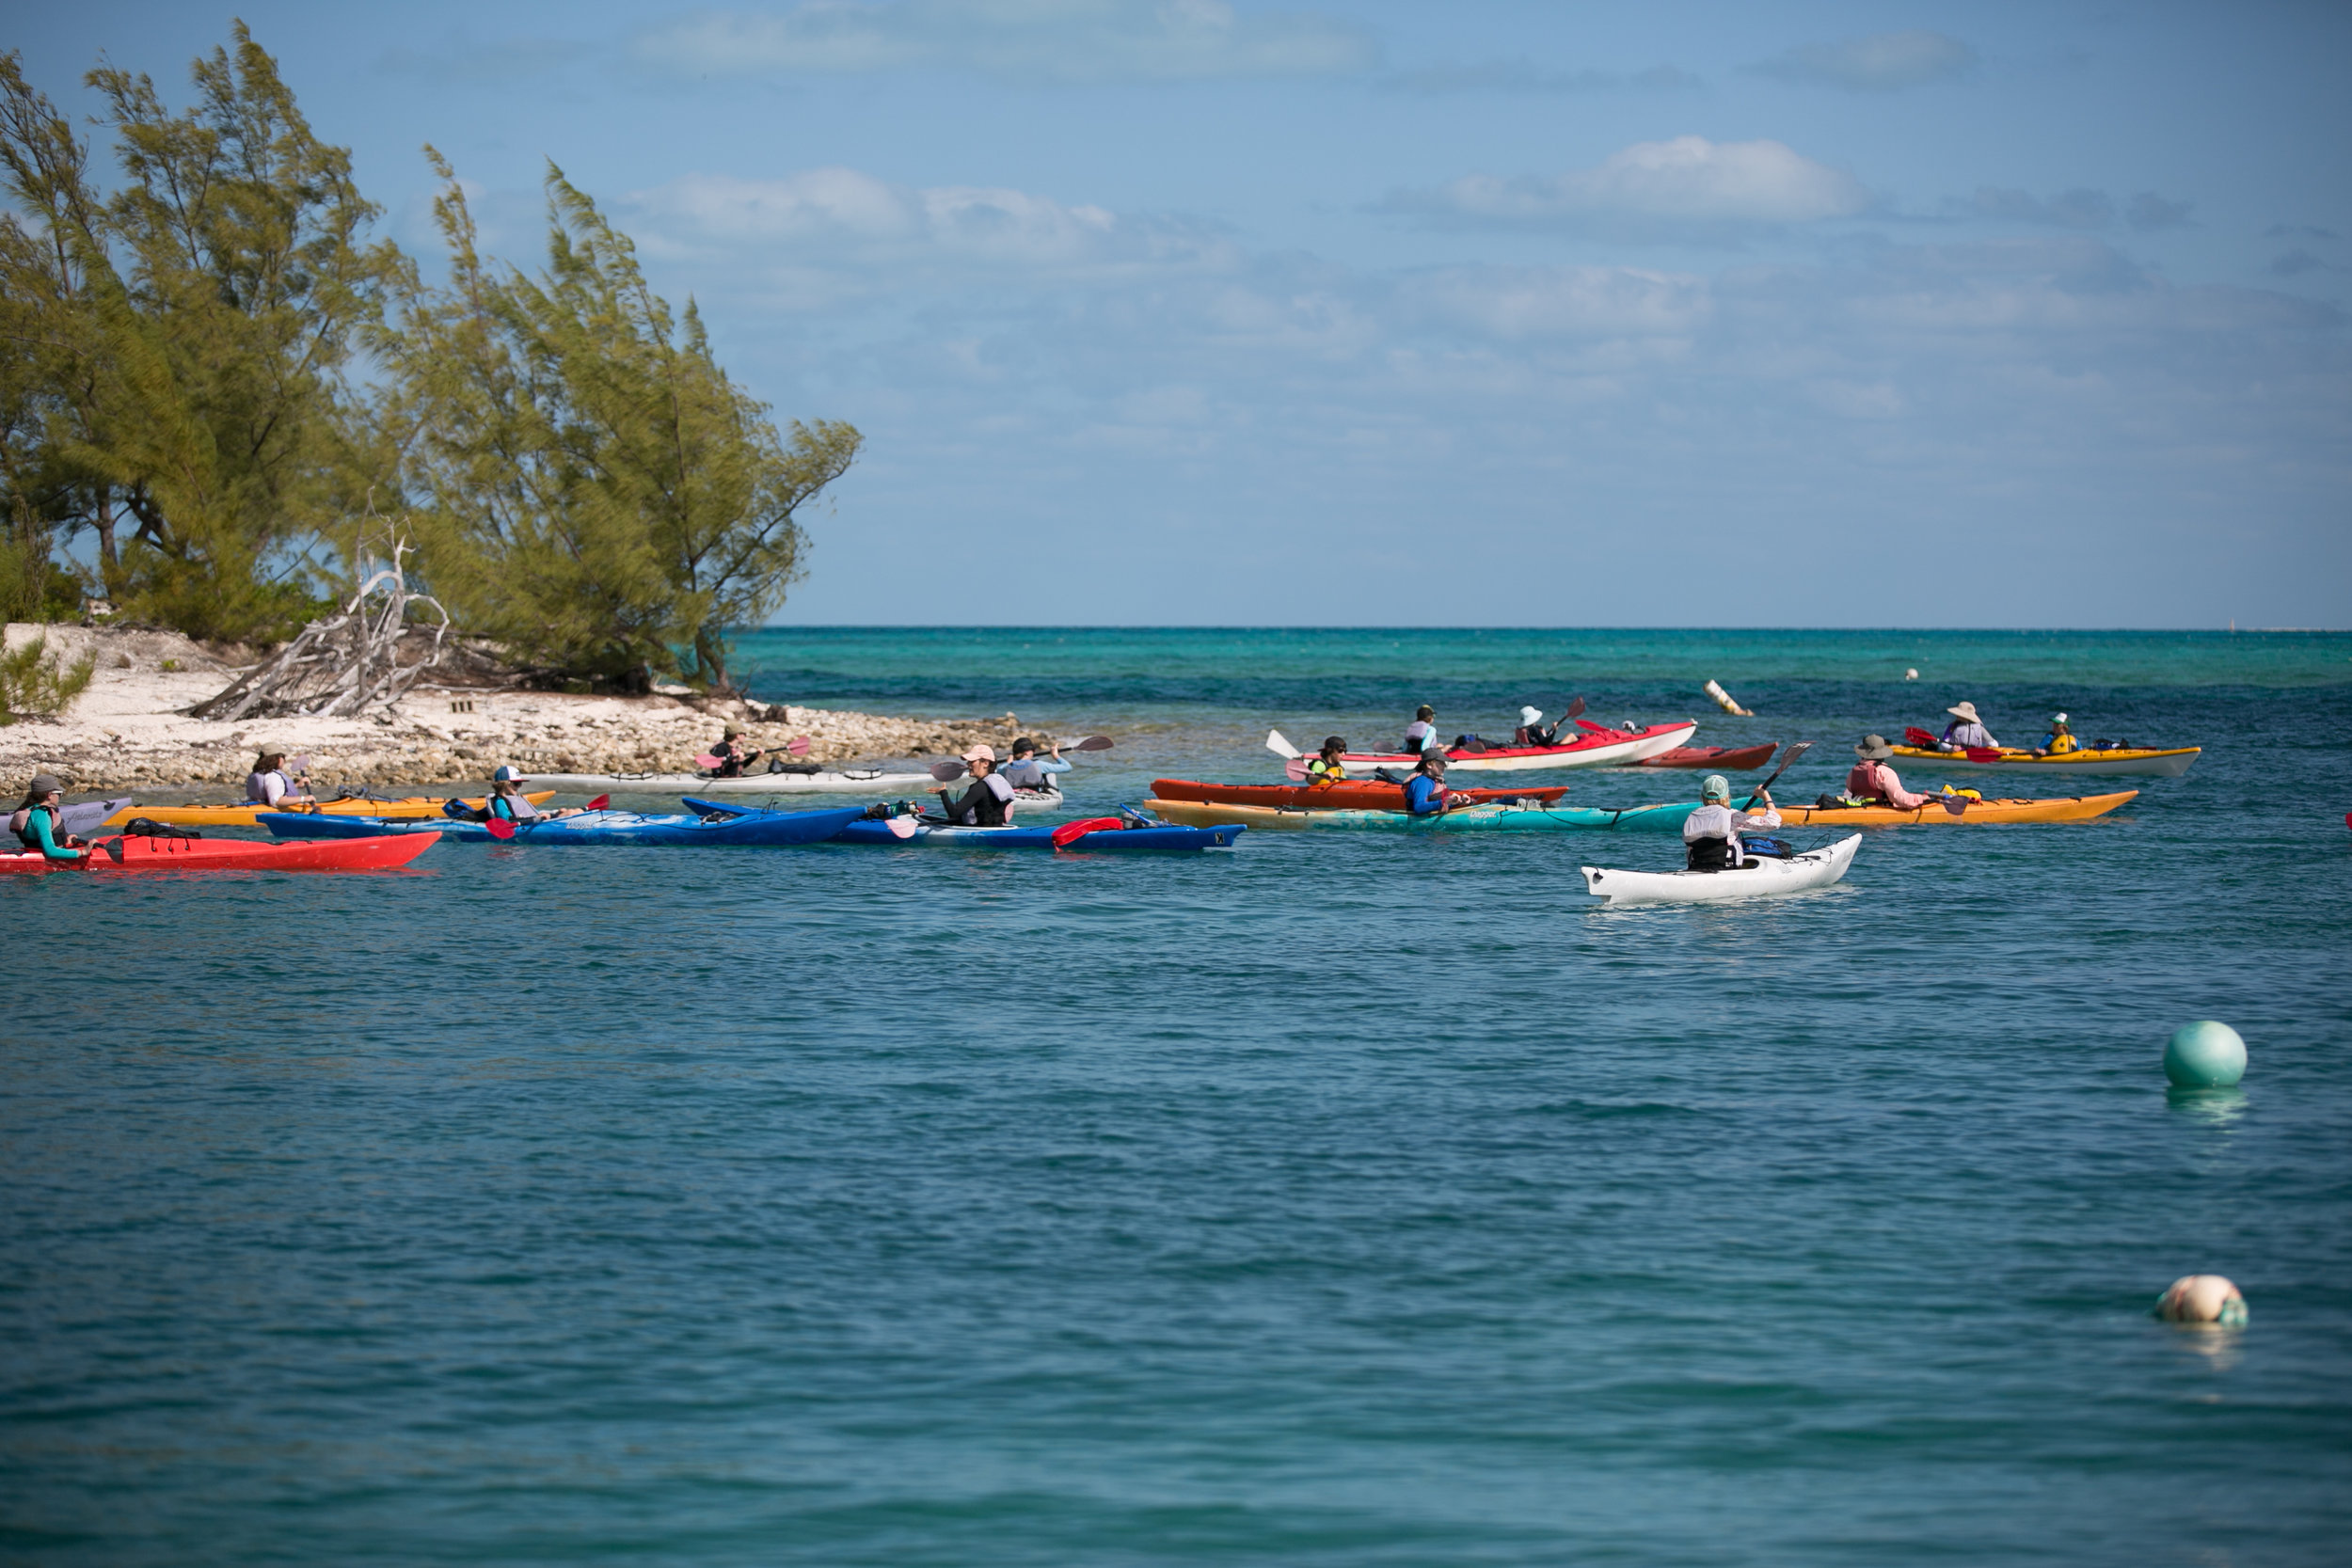 Students going out for an afternoon kayak adventure